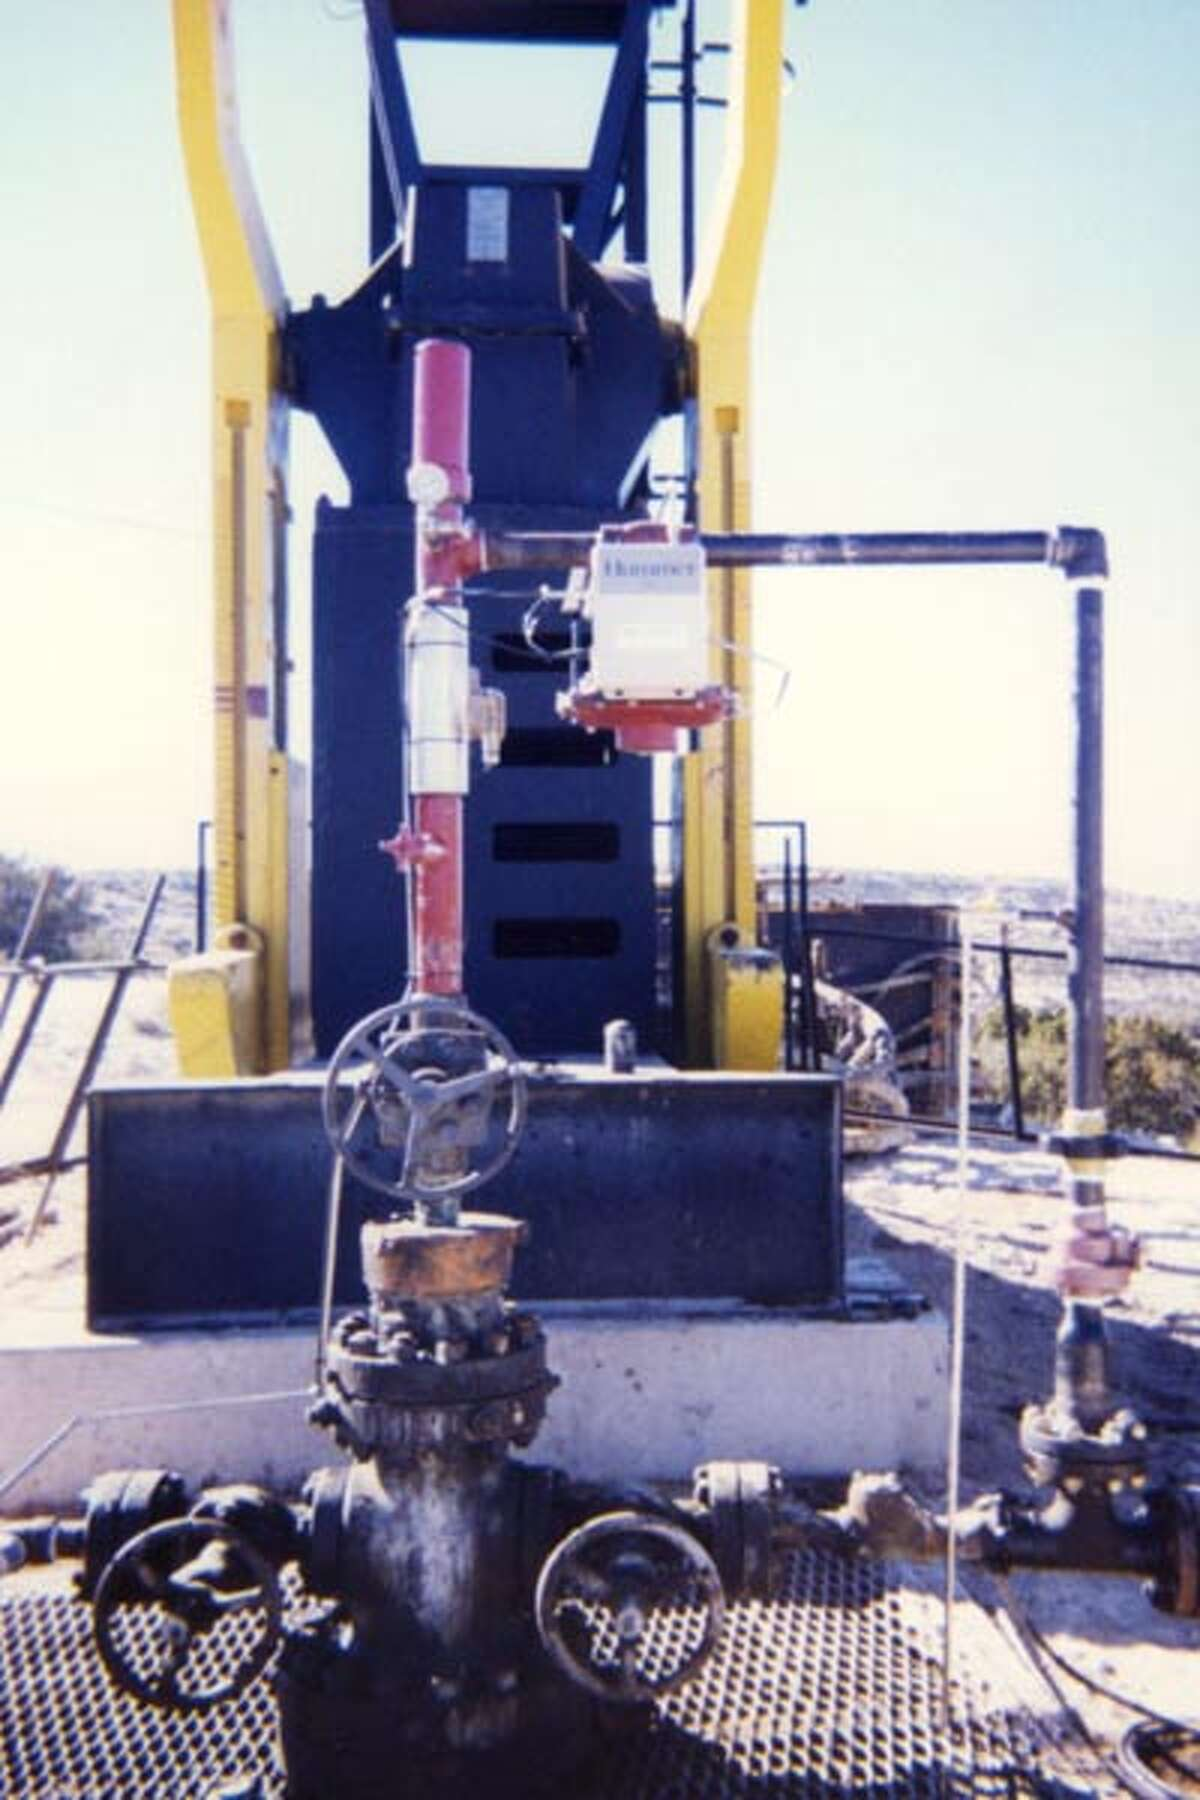 A plunger lift system from PLSI can increase oil and gas production at a fraction of rod pump costs. Call PLSI at 699-1200.